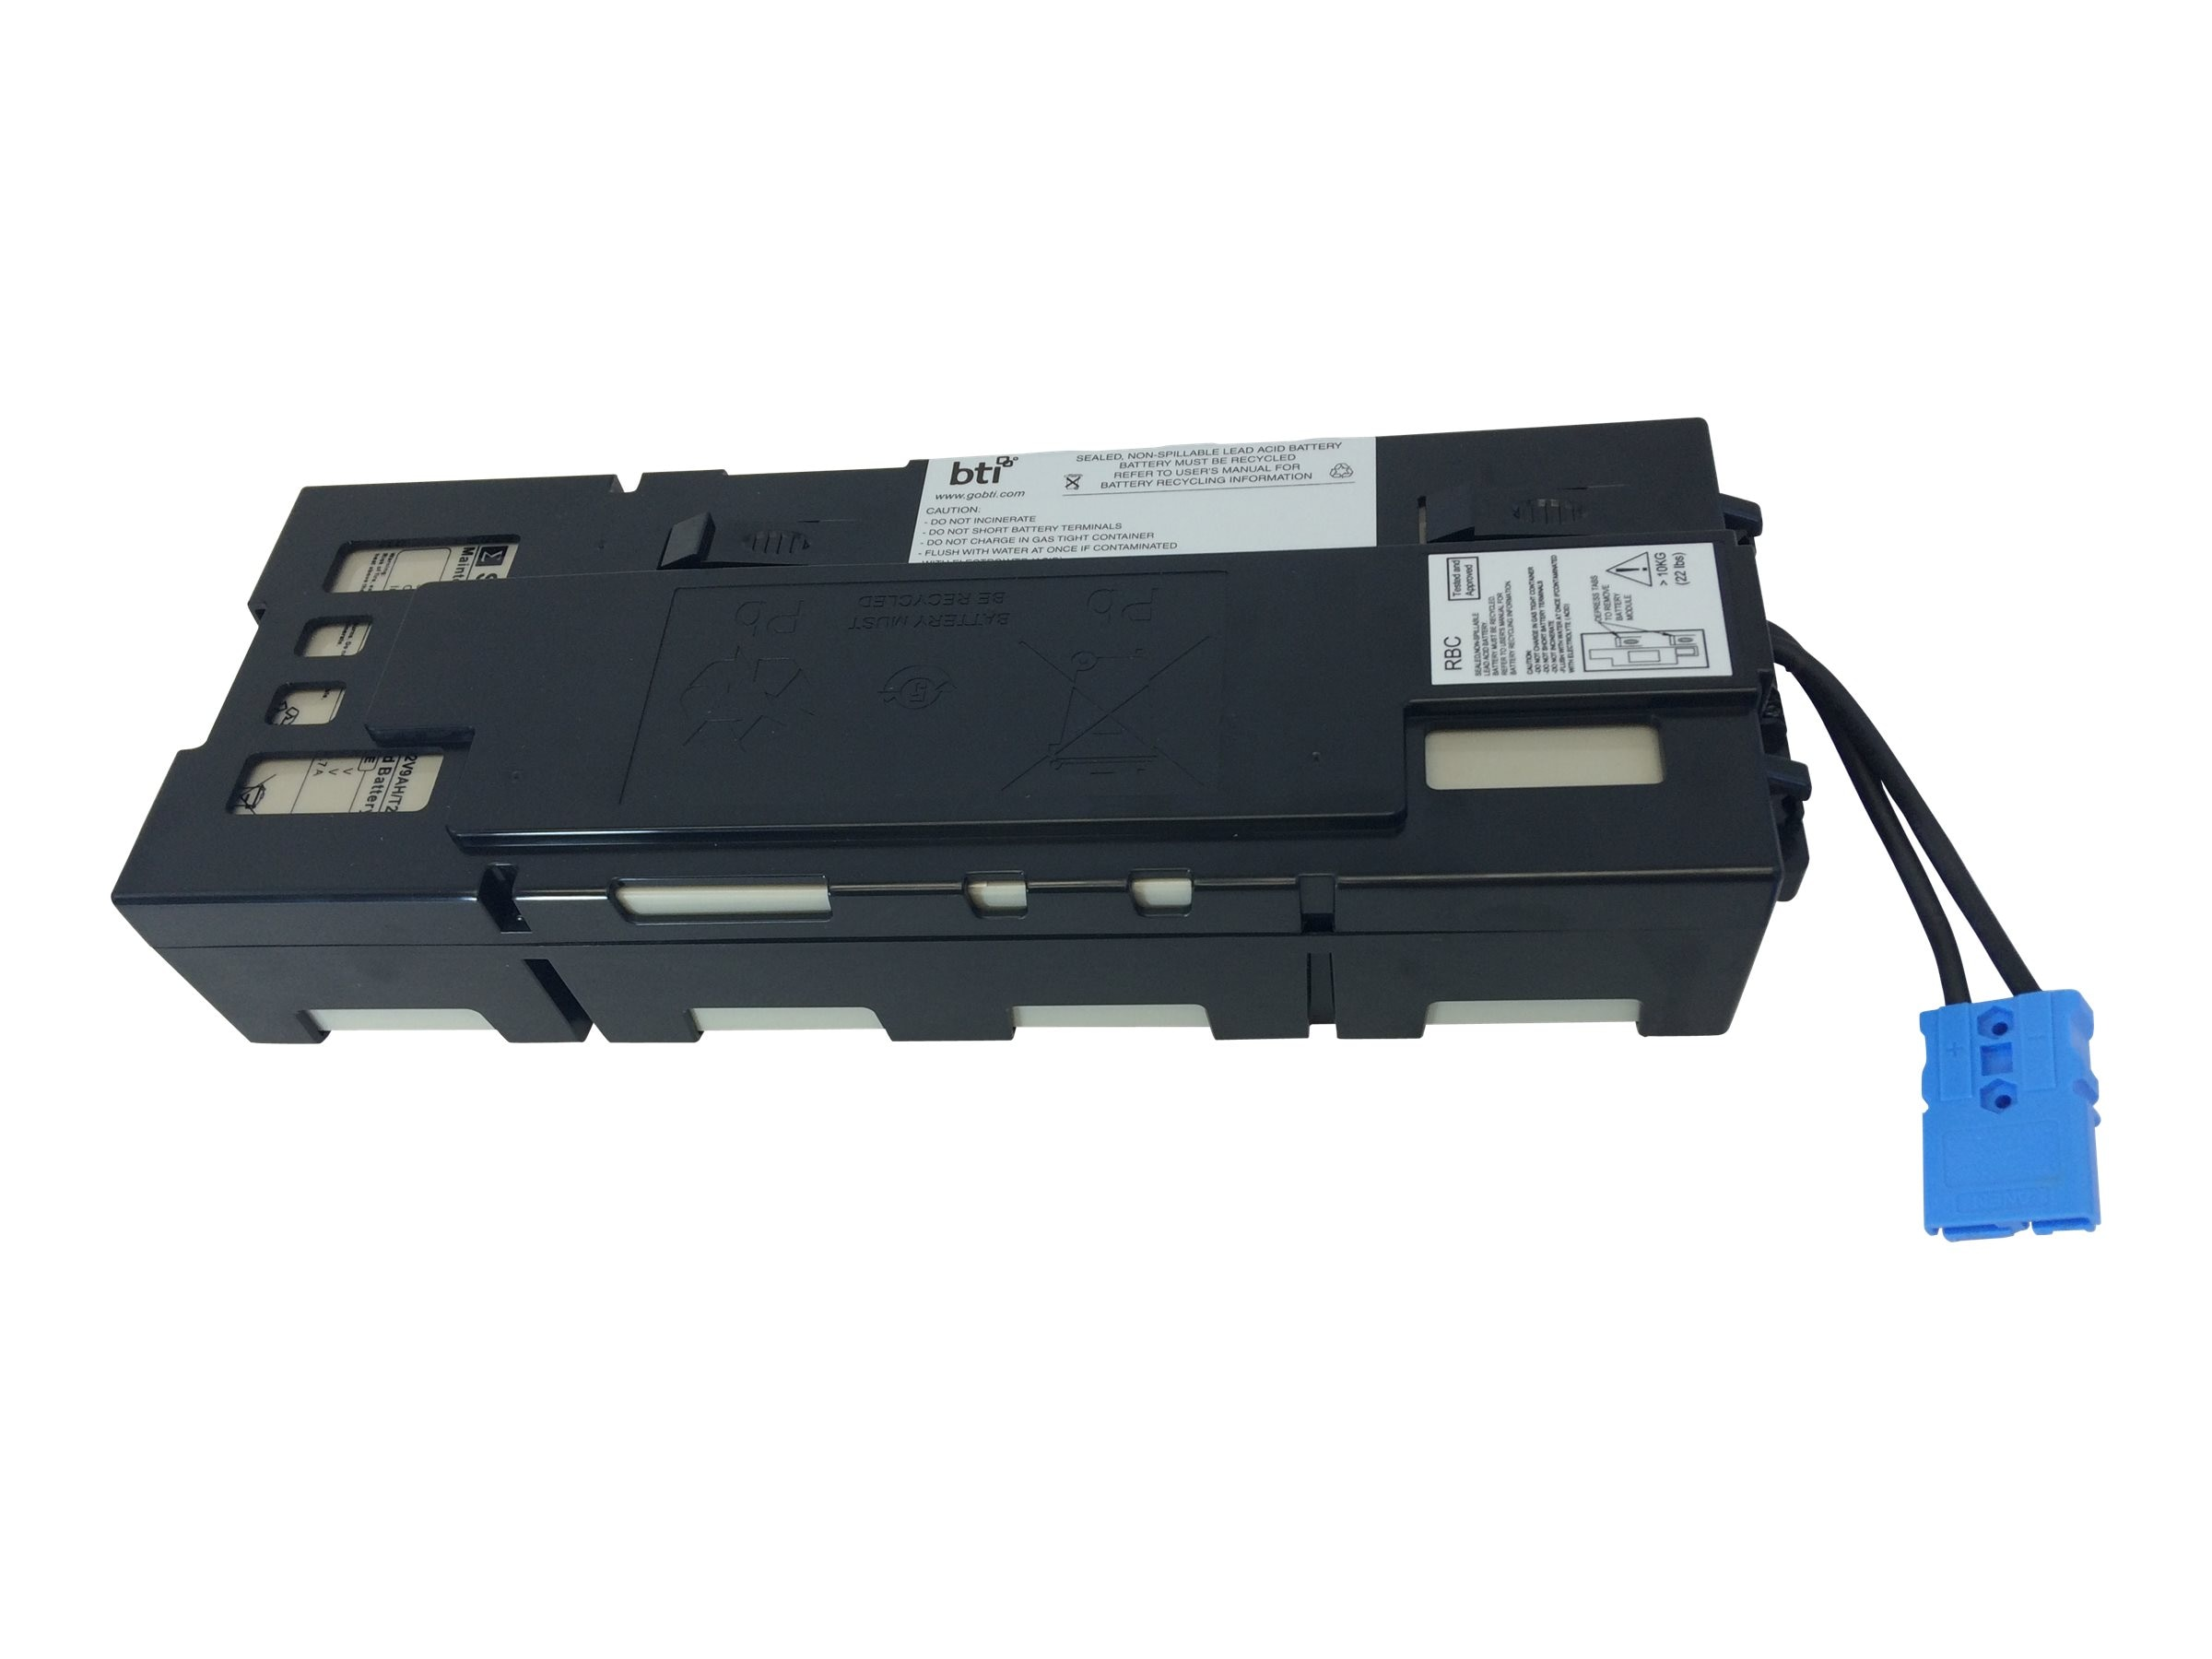 BTI RBC115 APC UPS Replacement Battery BATTSMX1500RM2U APCRBC115